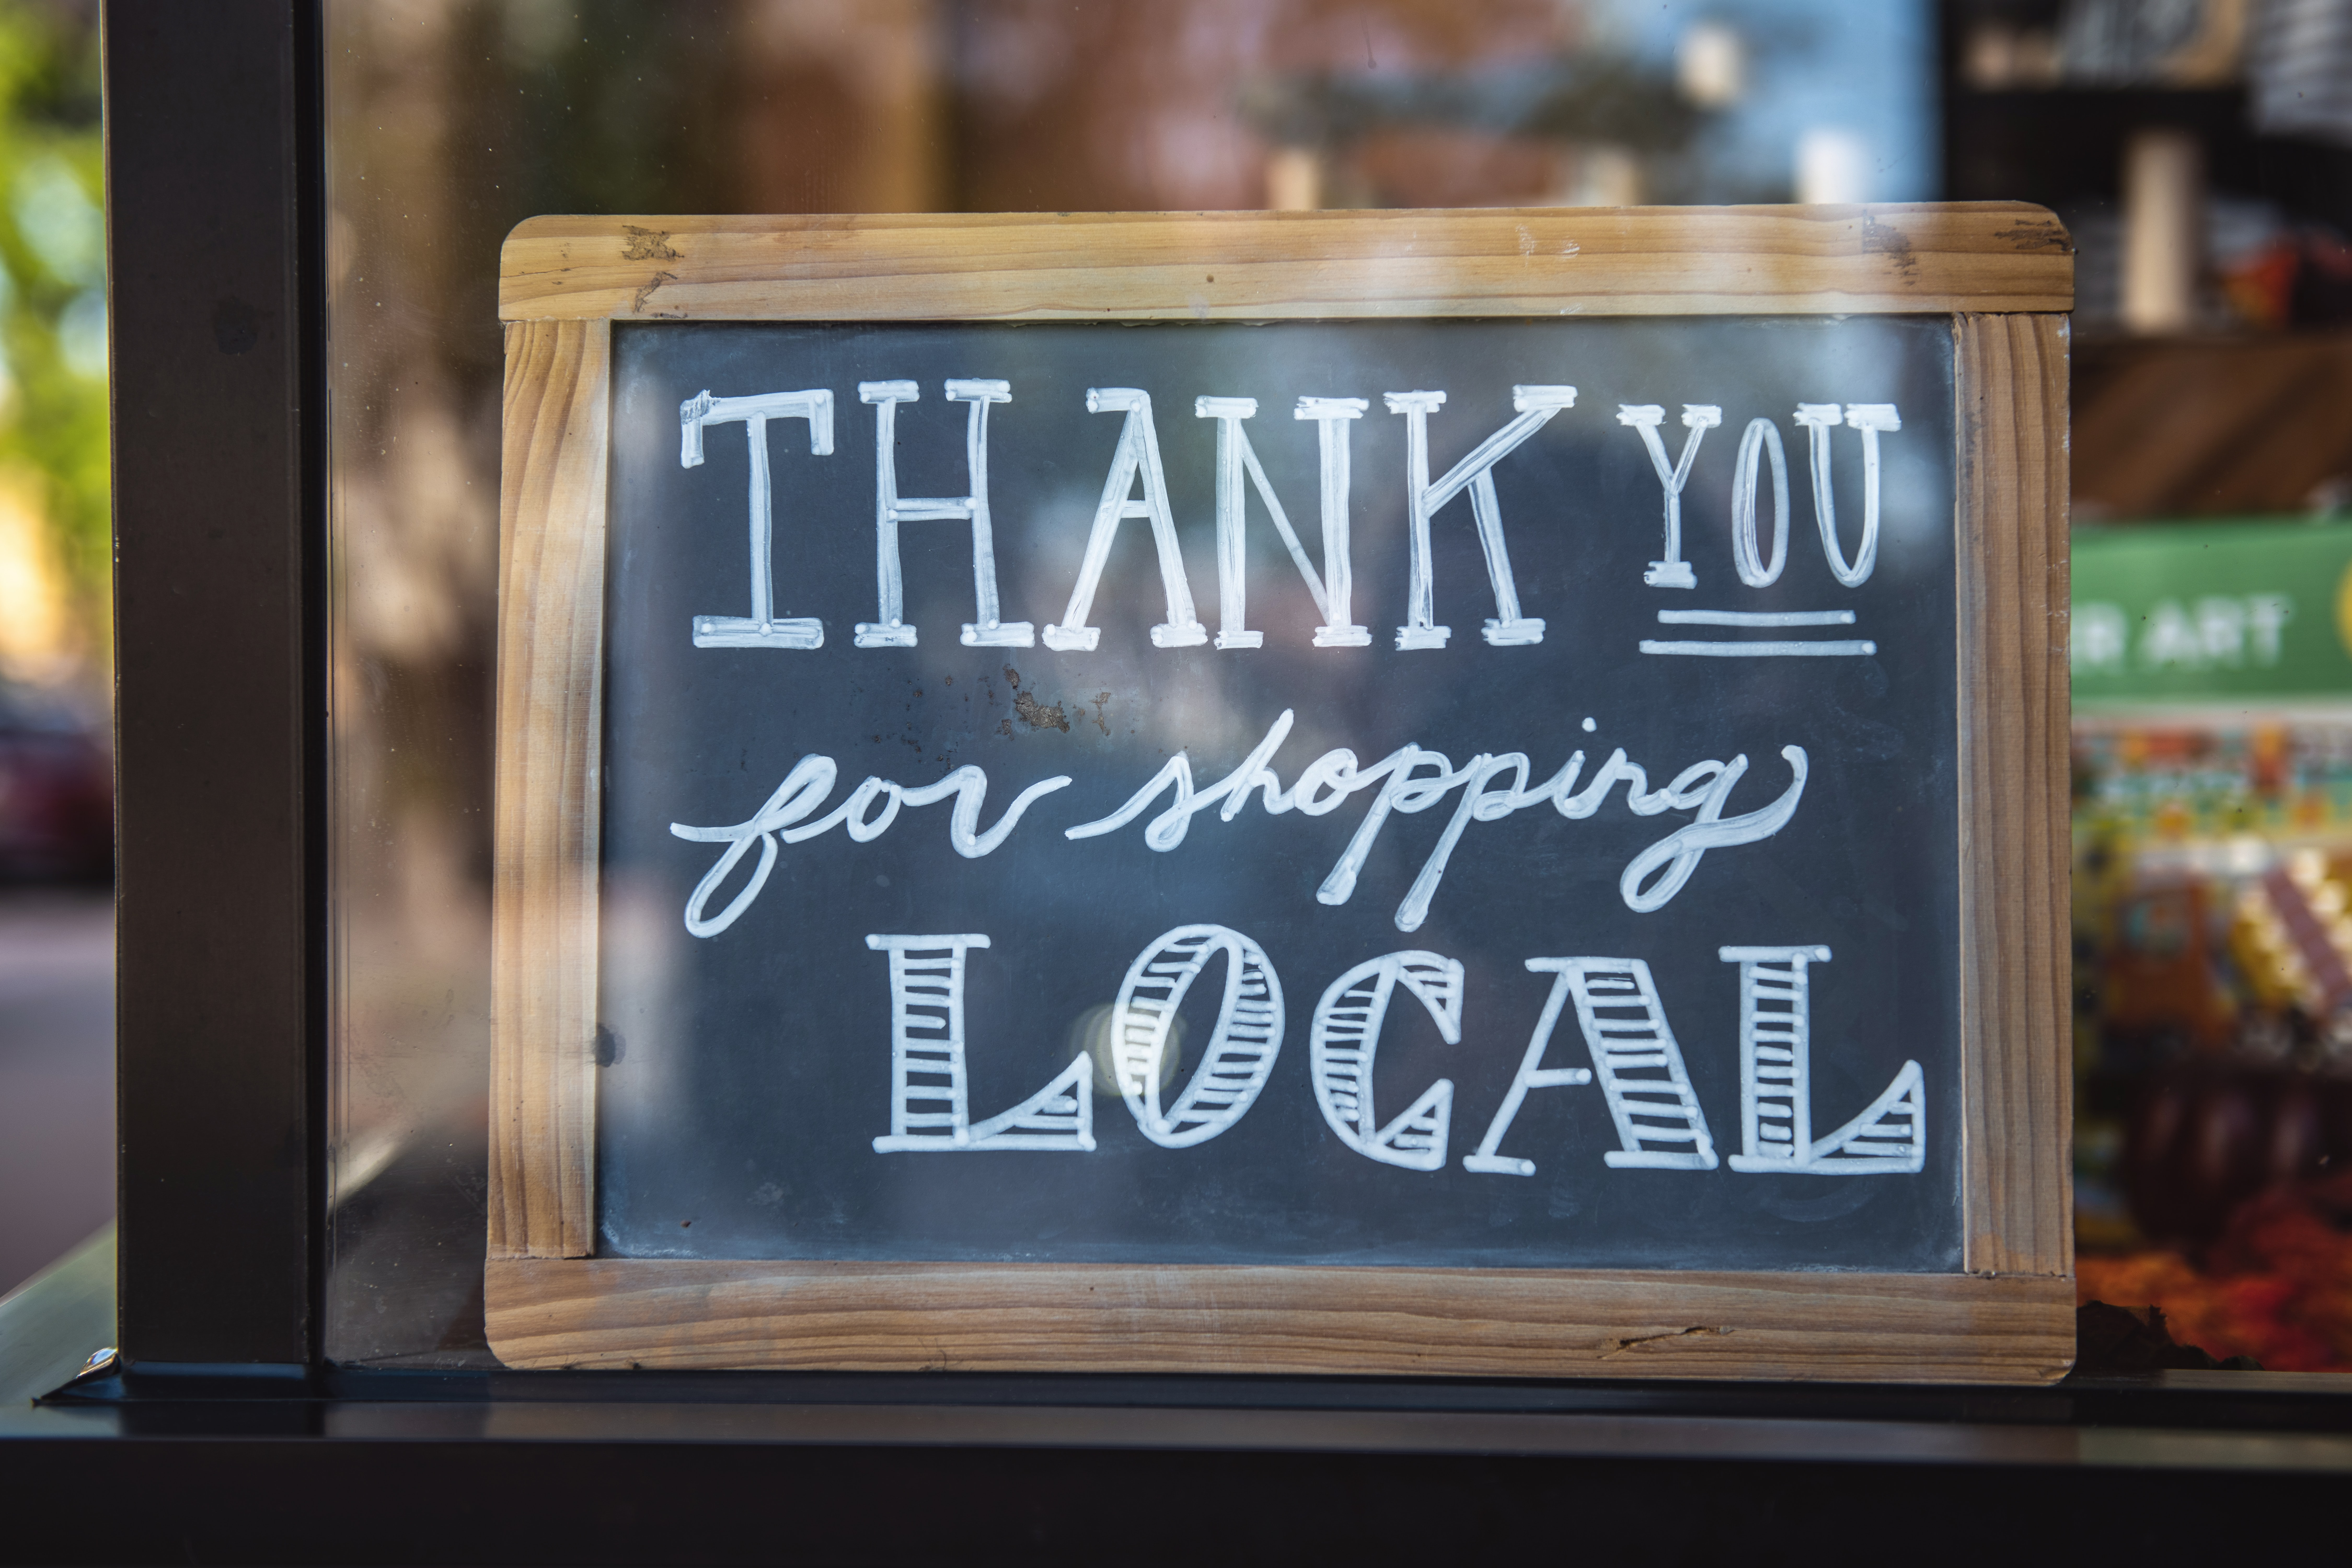 Why you should buy local for your business